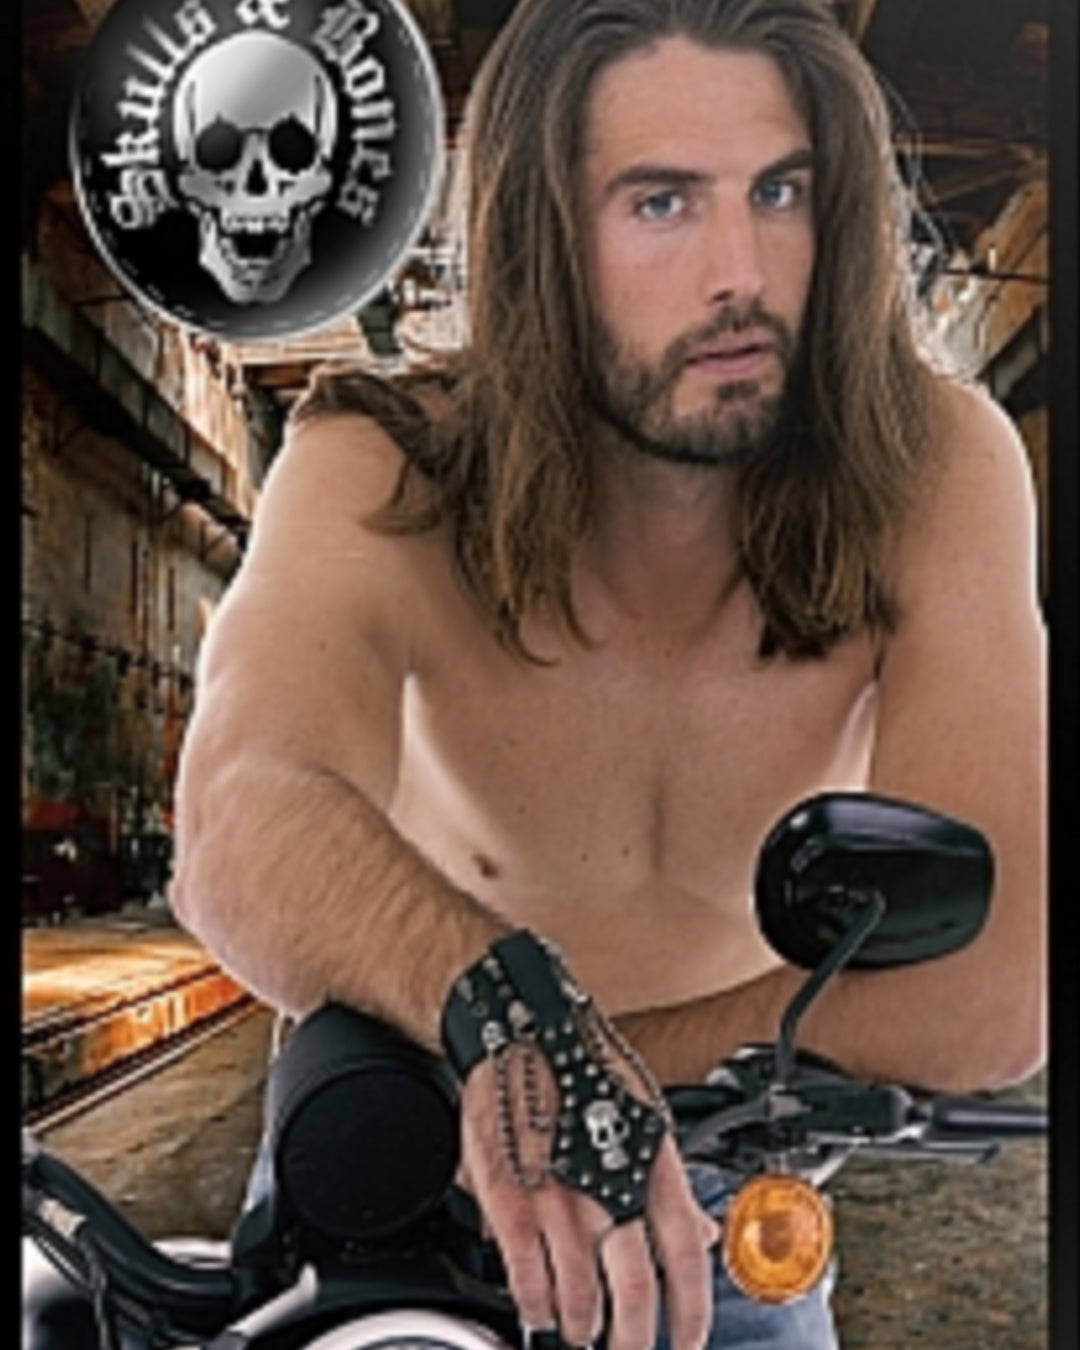 Man on motorcycle wearing Ouch! Skulls & Bones Handcuffs With Skulls and Chains Black